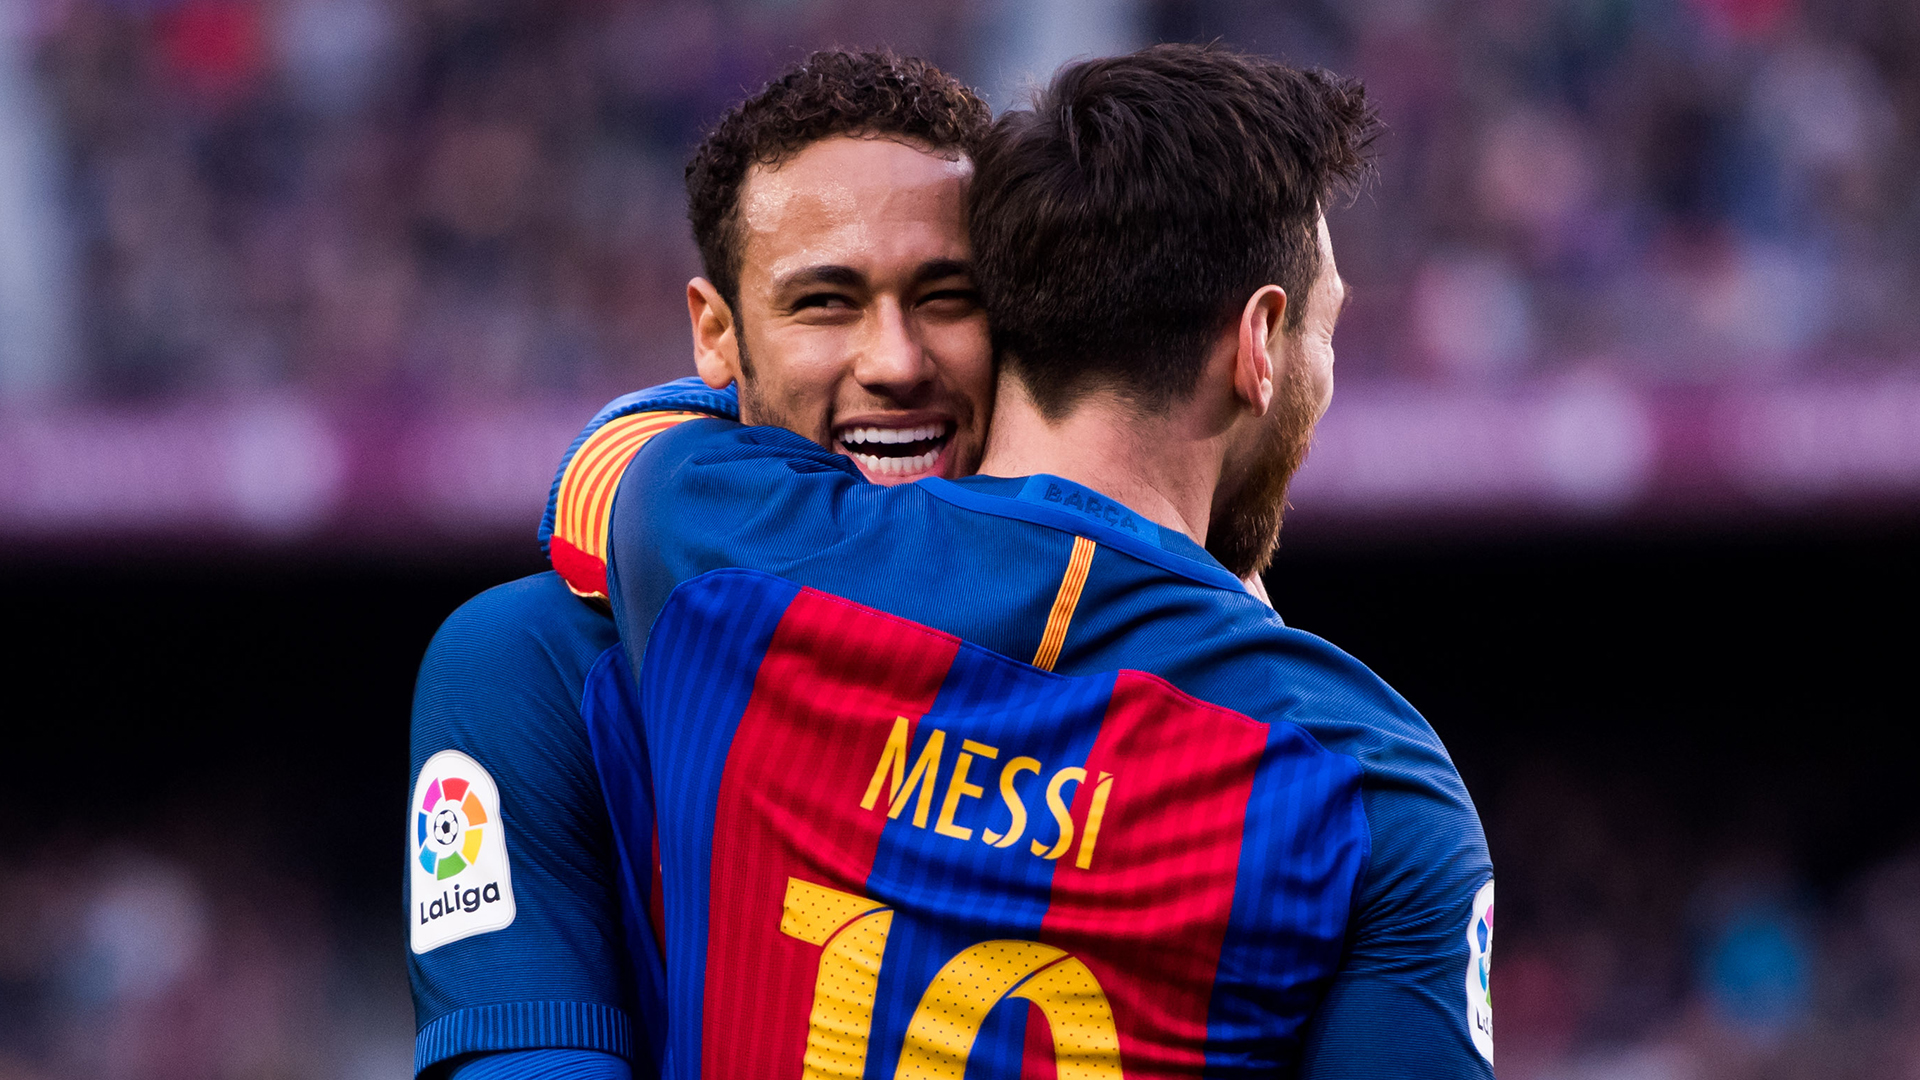 'We have to do it!' - PSG star Neymar wants to reunite with Messi next season